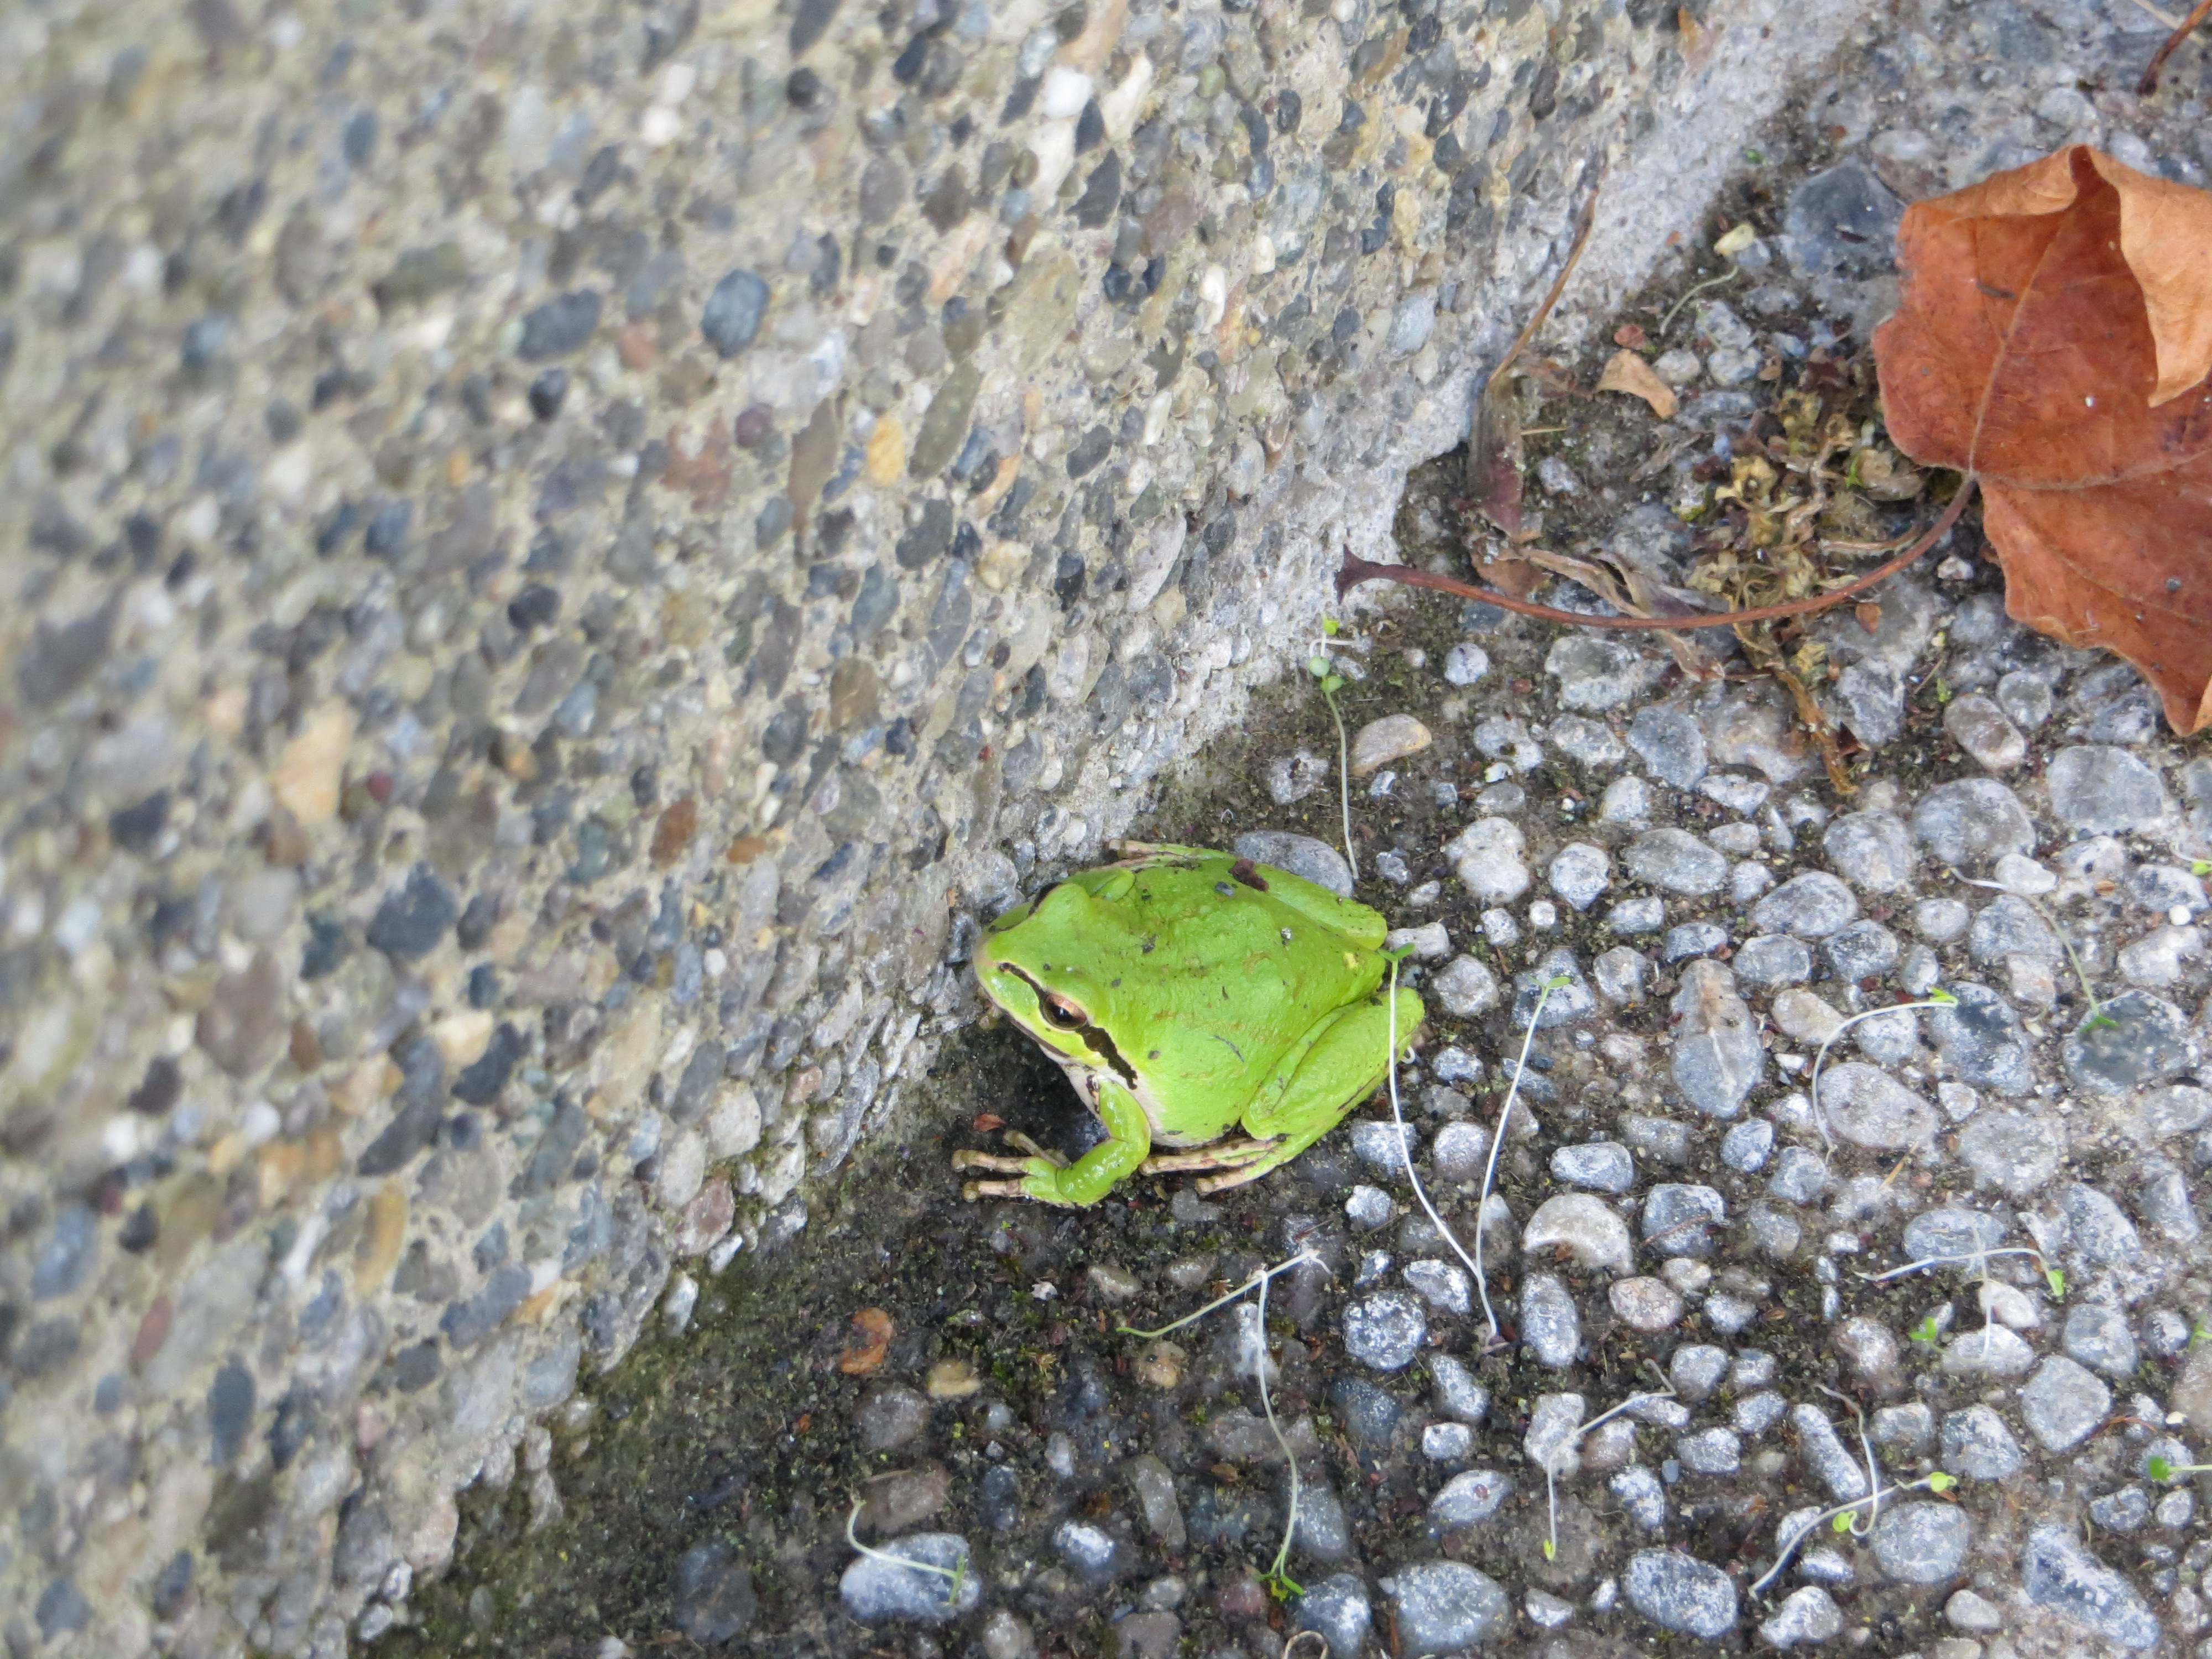 frog friend in the backyard inspiration in a photo